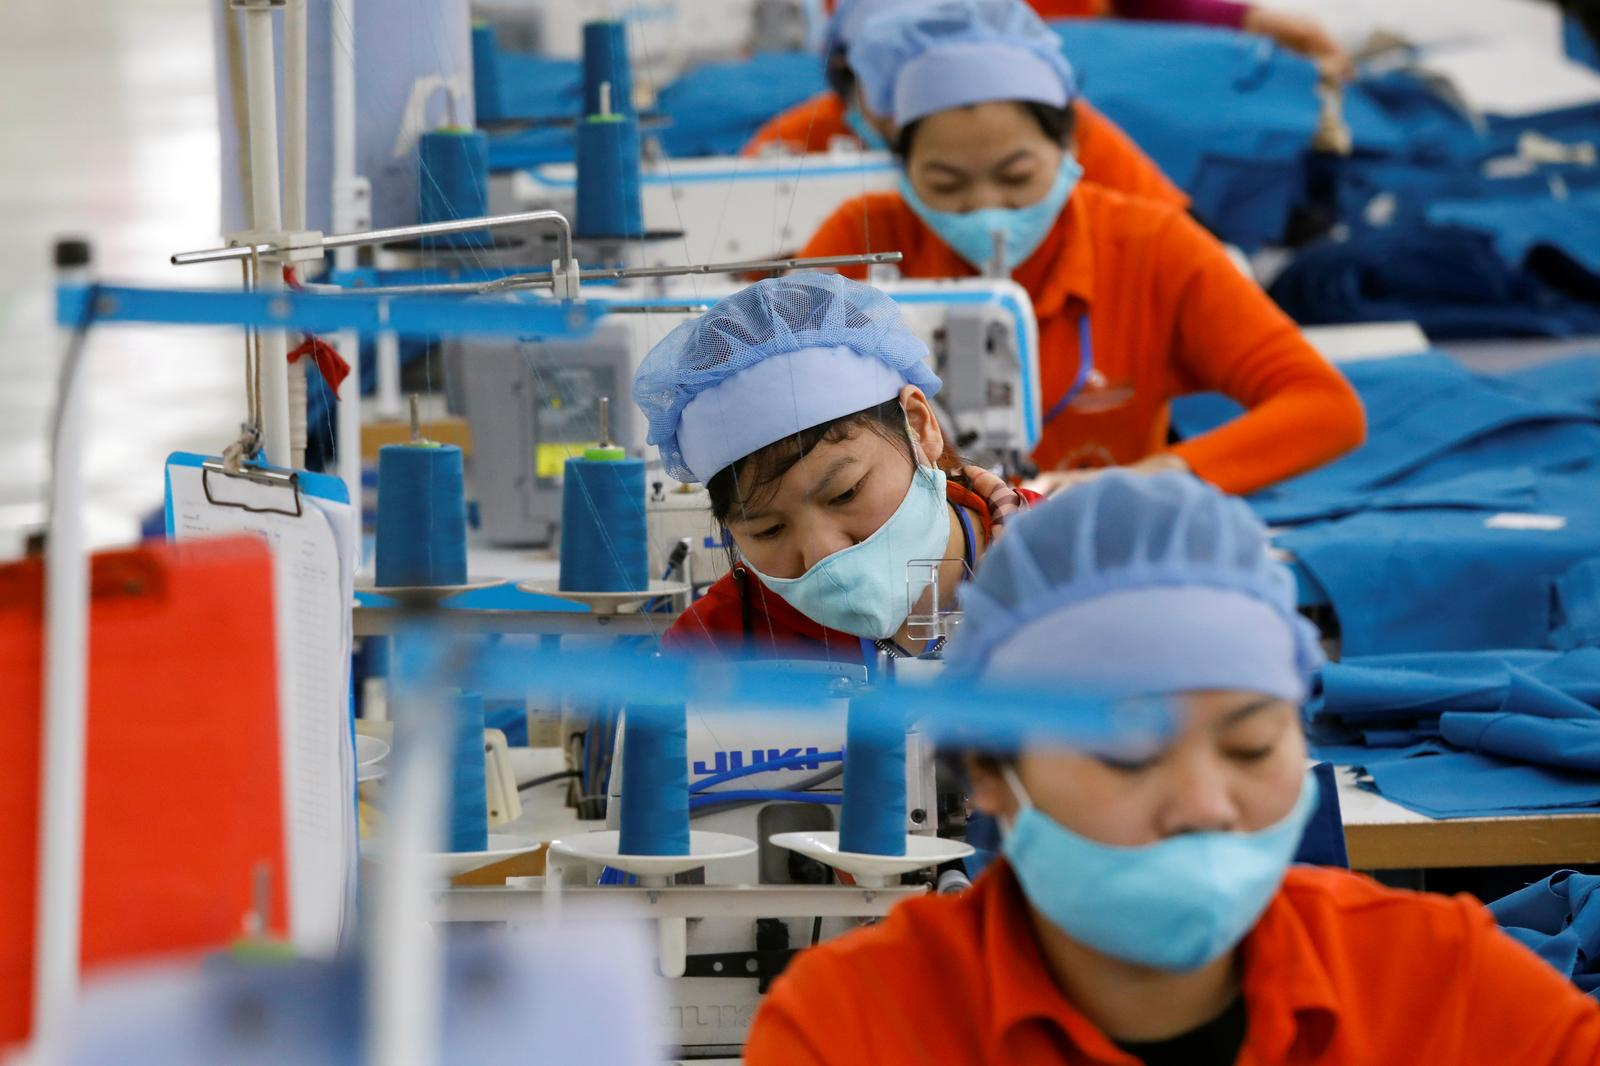 Vietnam sees foreign investment rise to $4.1 billion in first quarter